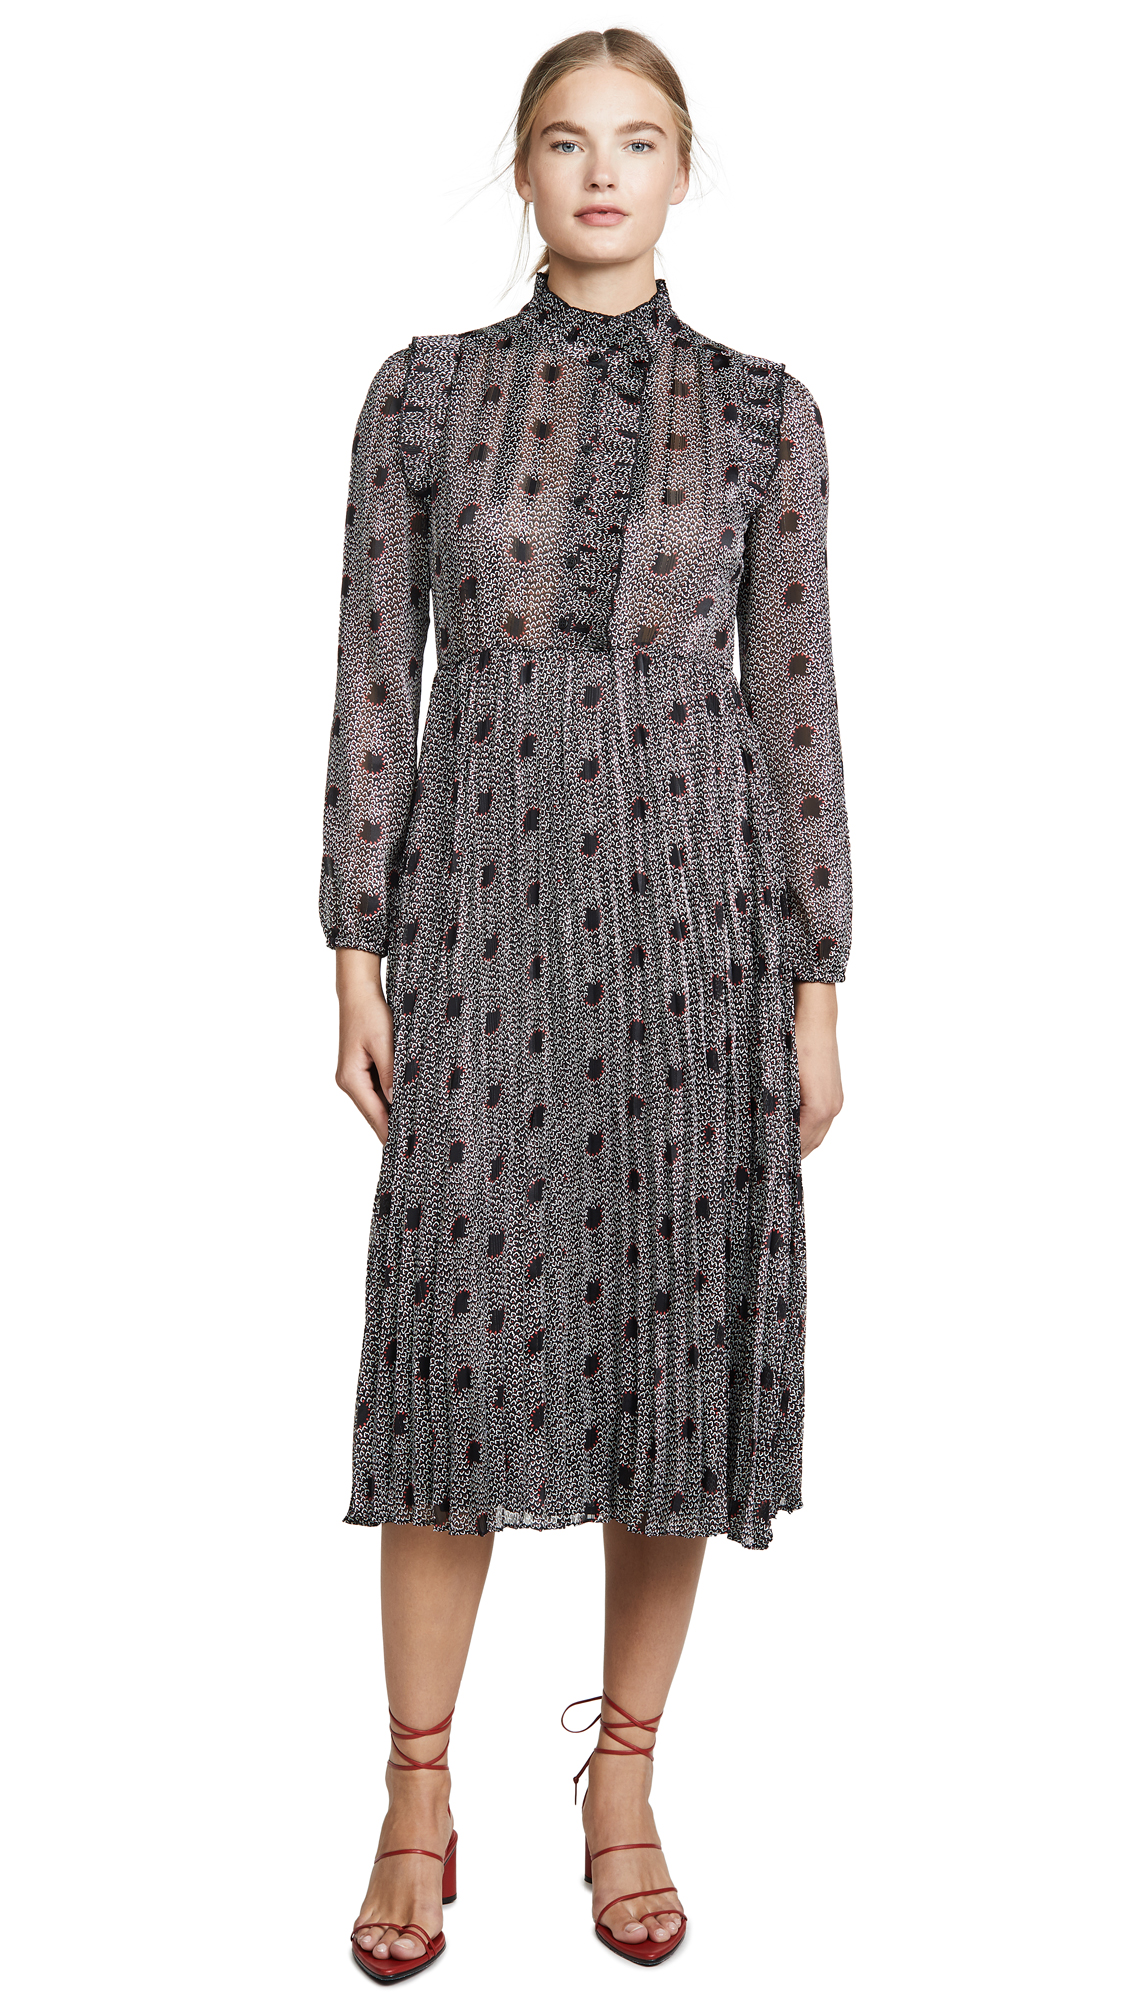 Buy Ba & sh Paris Dress online beautiful Ba & sh Clothing, Dresses